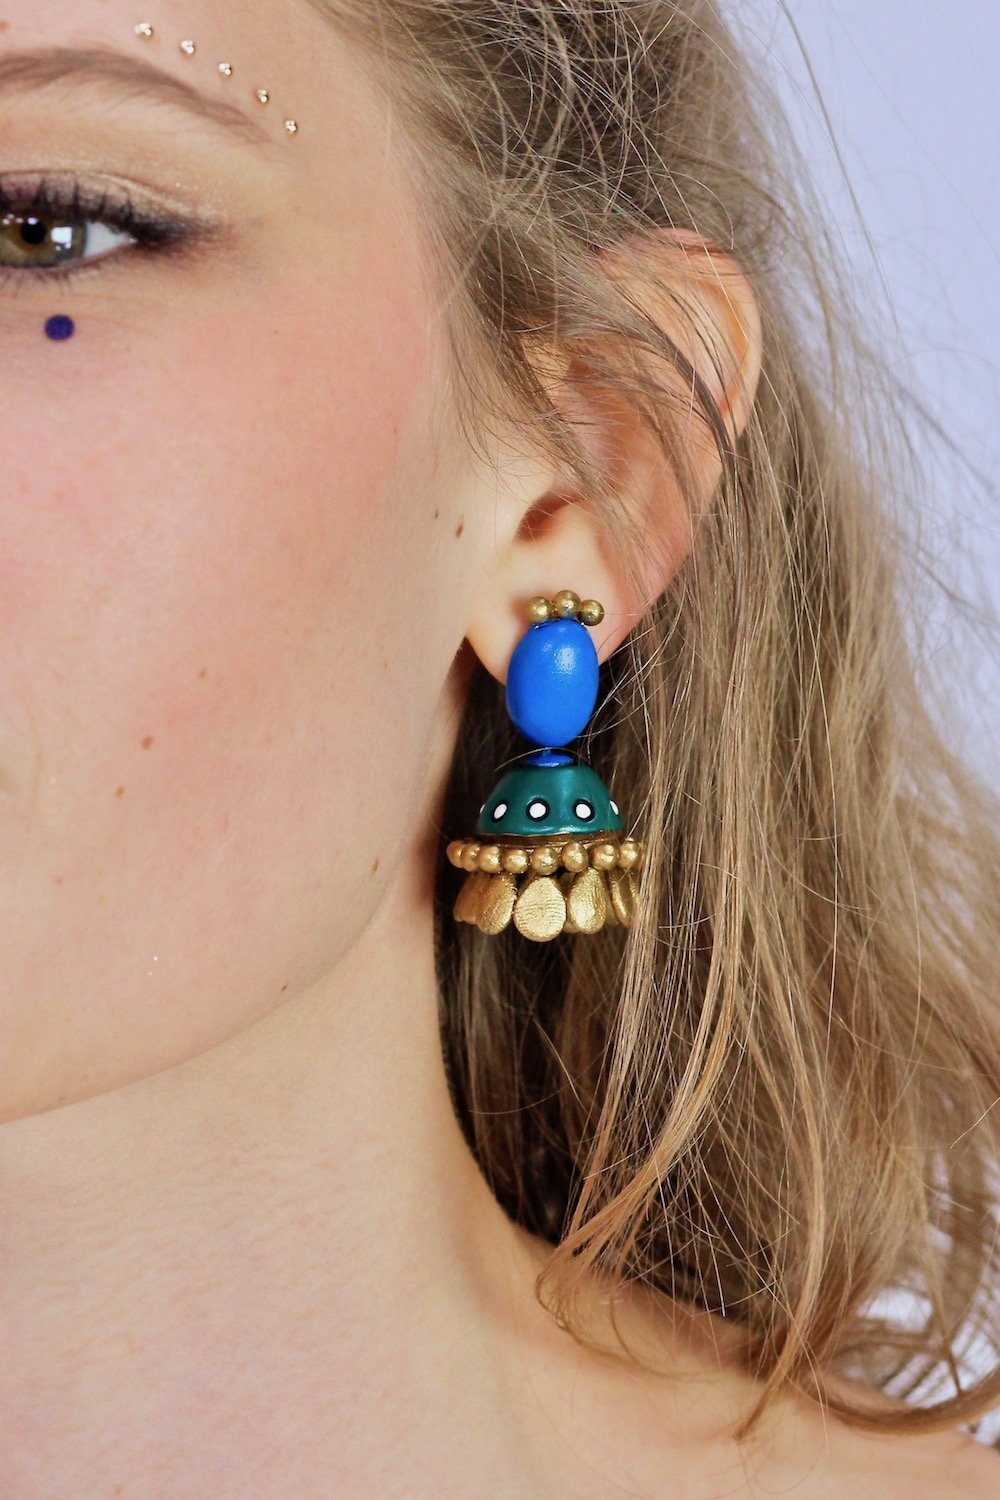 Royal Peacock - Boucles d'oreilles - Azaadi, la mode responsable accessible